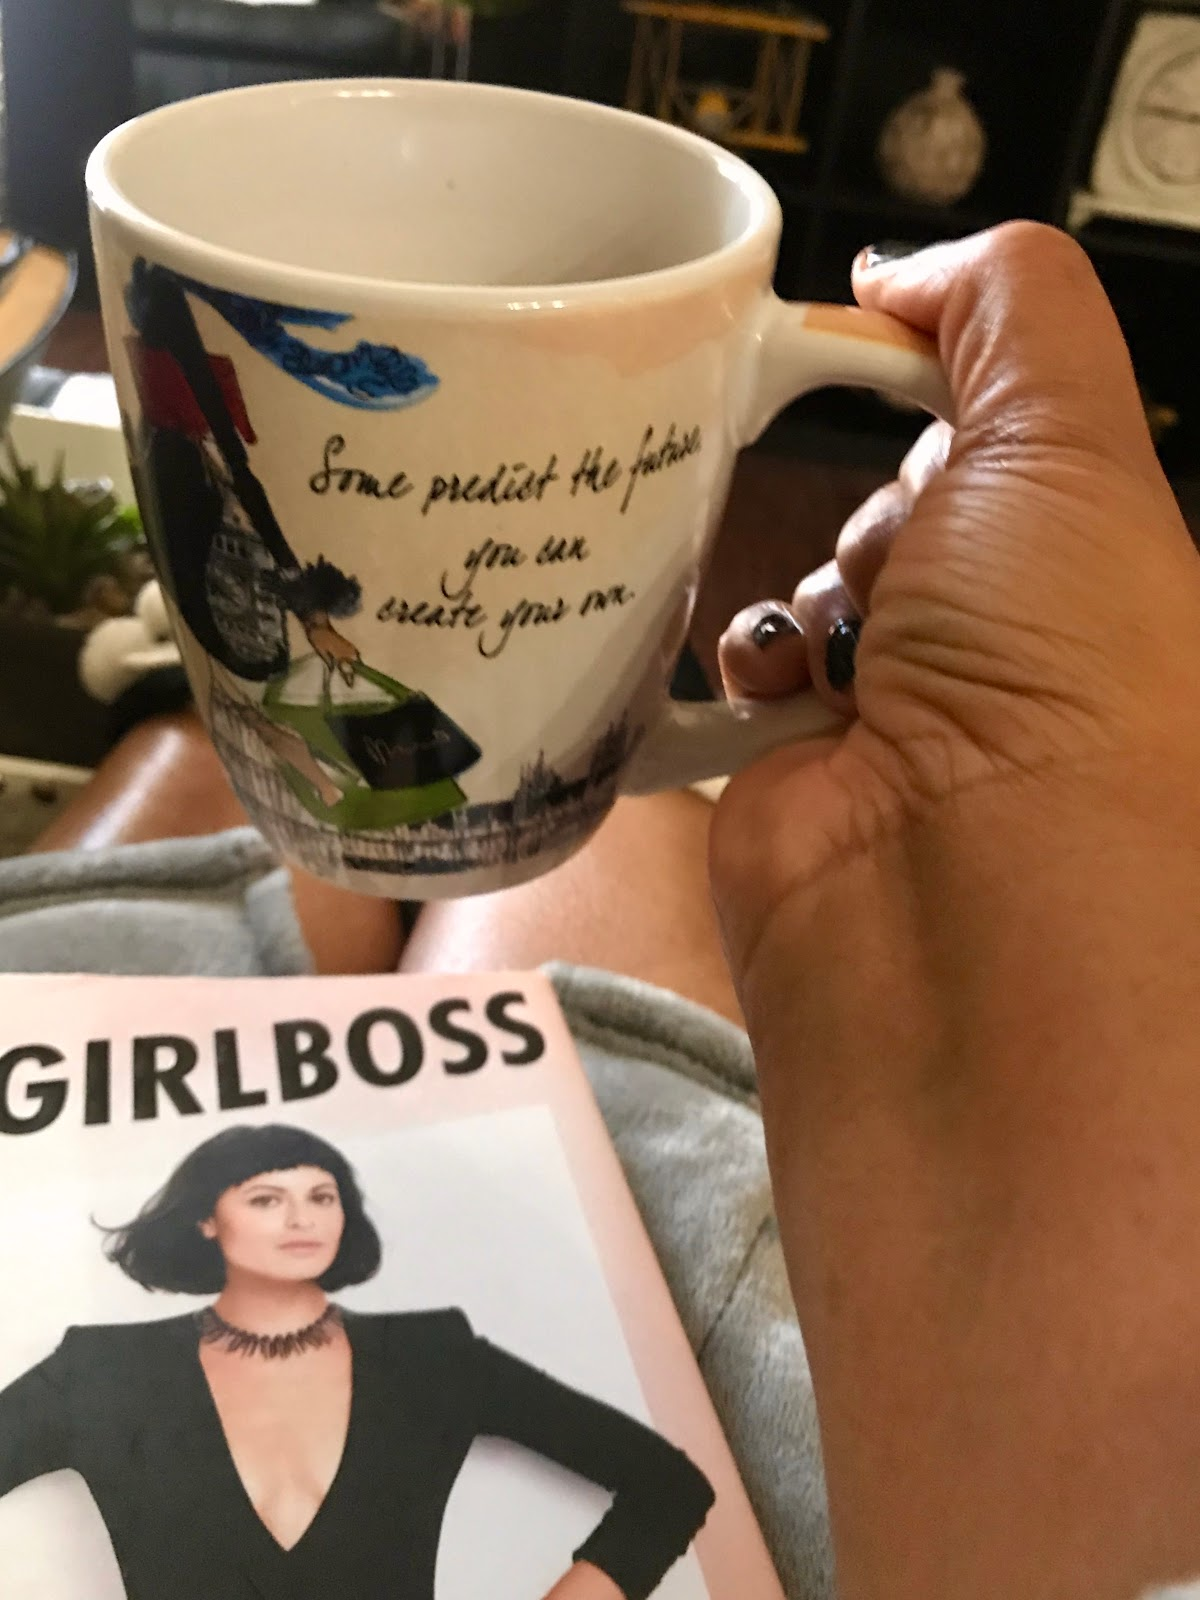 Coffee cup, girl boss book for a winter with ease motivation